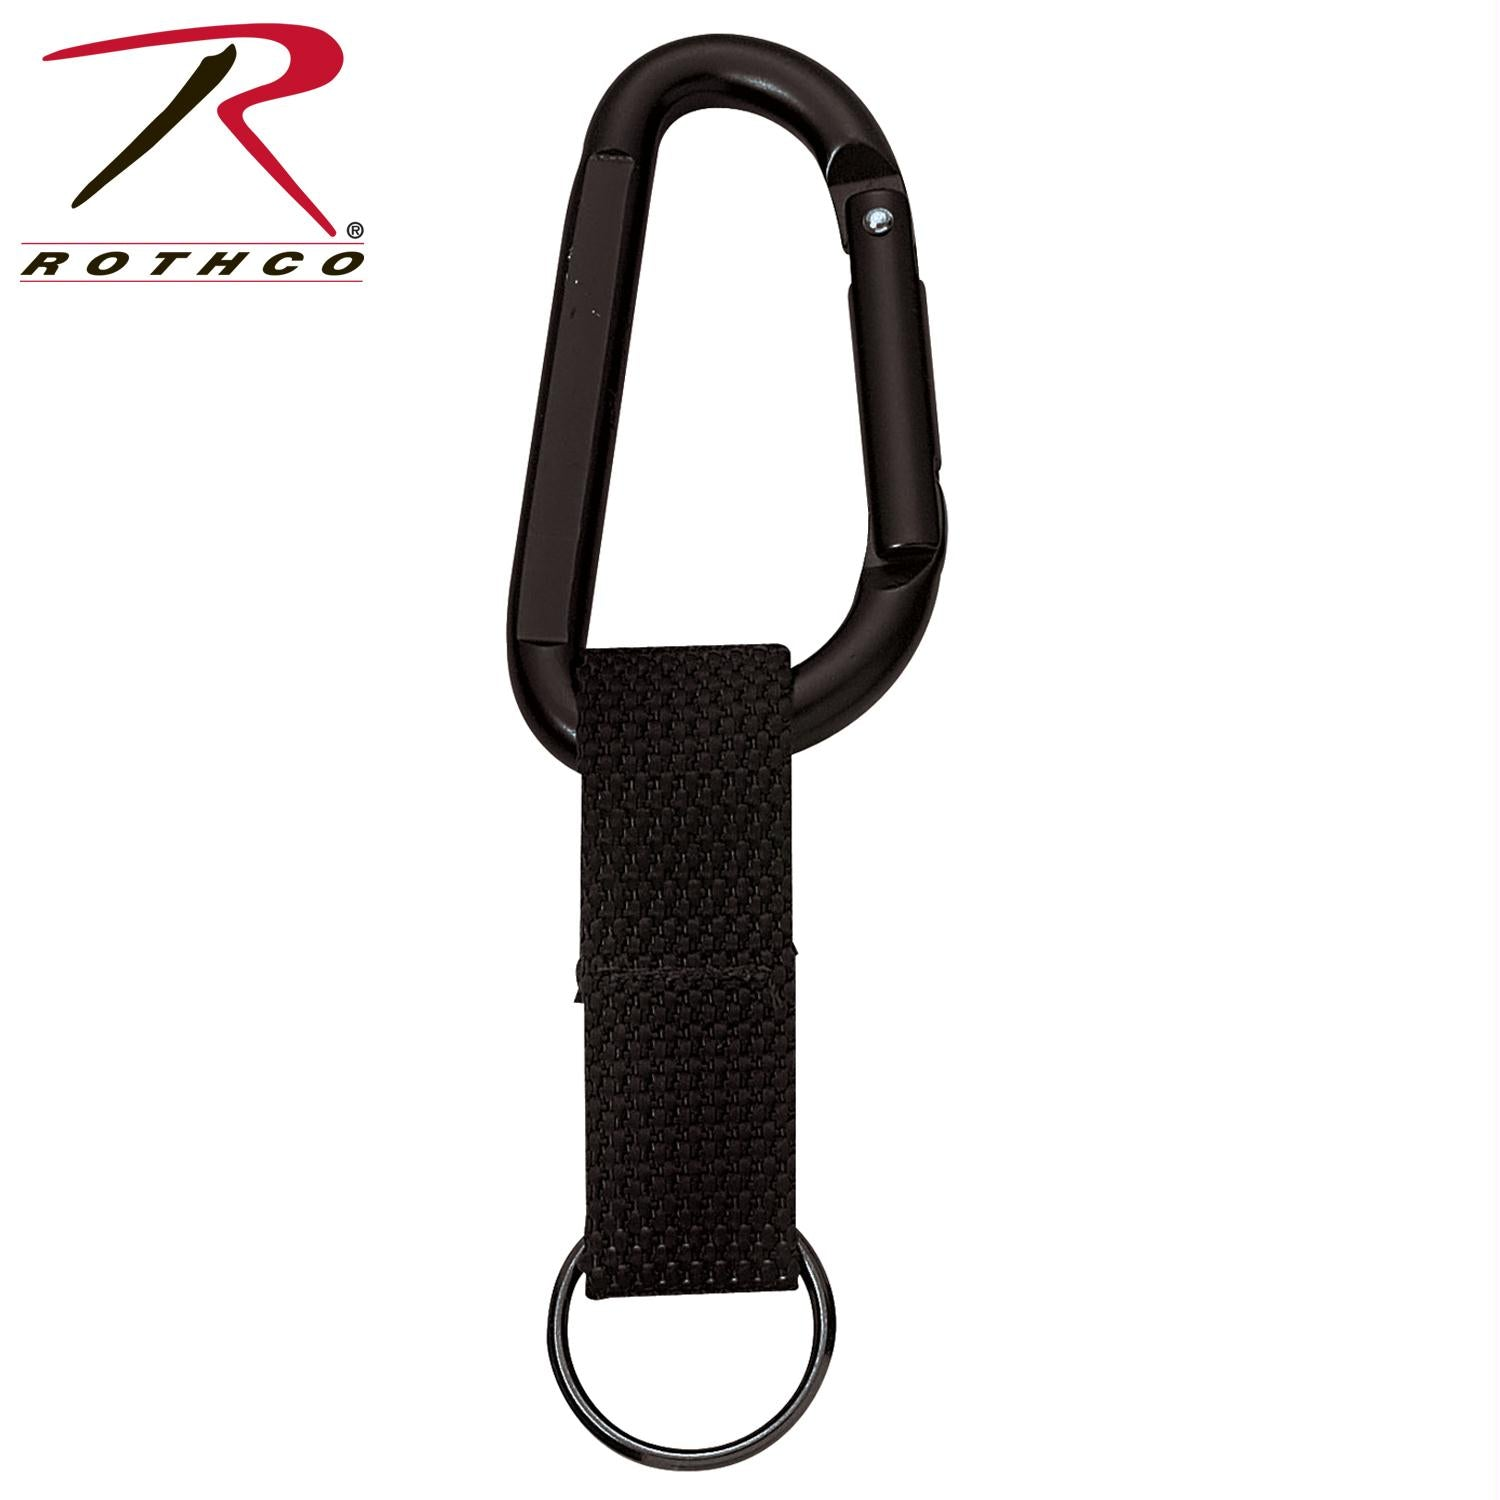 Rothco Jumbo 80MM Carabiner With Web Strap Key Ring